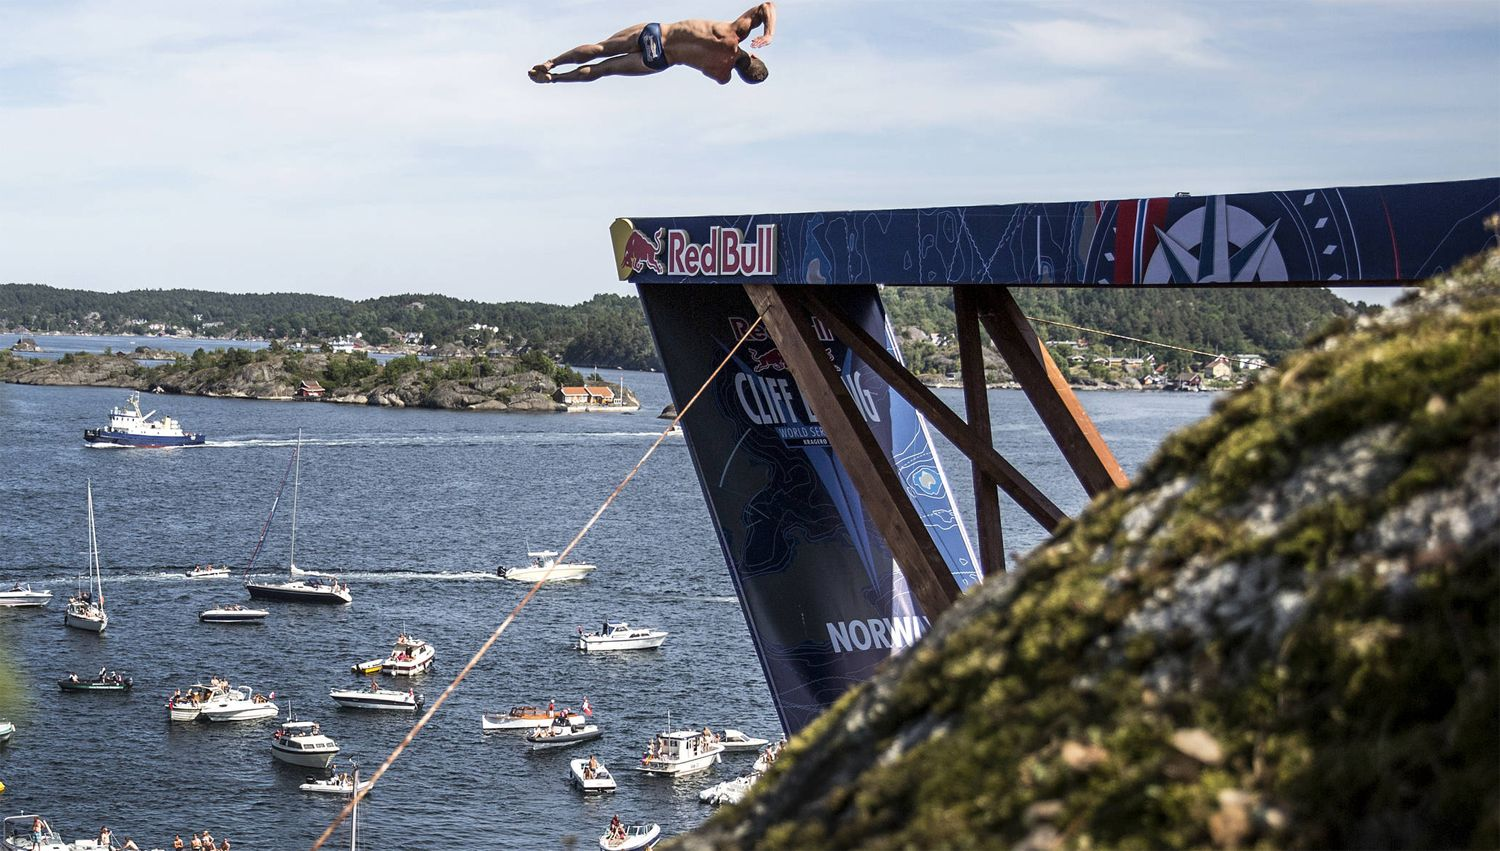 Oslo Opera House to Host Red Bull Cliff Diving